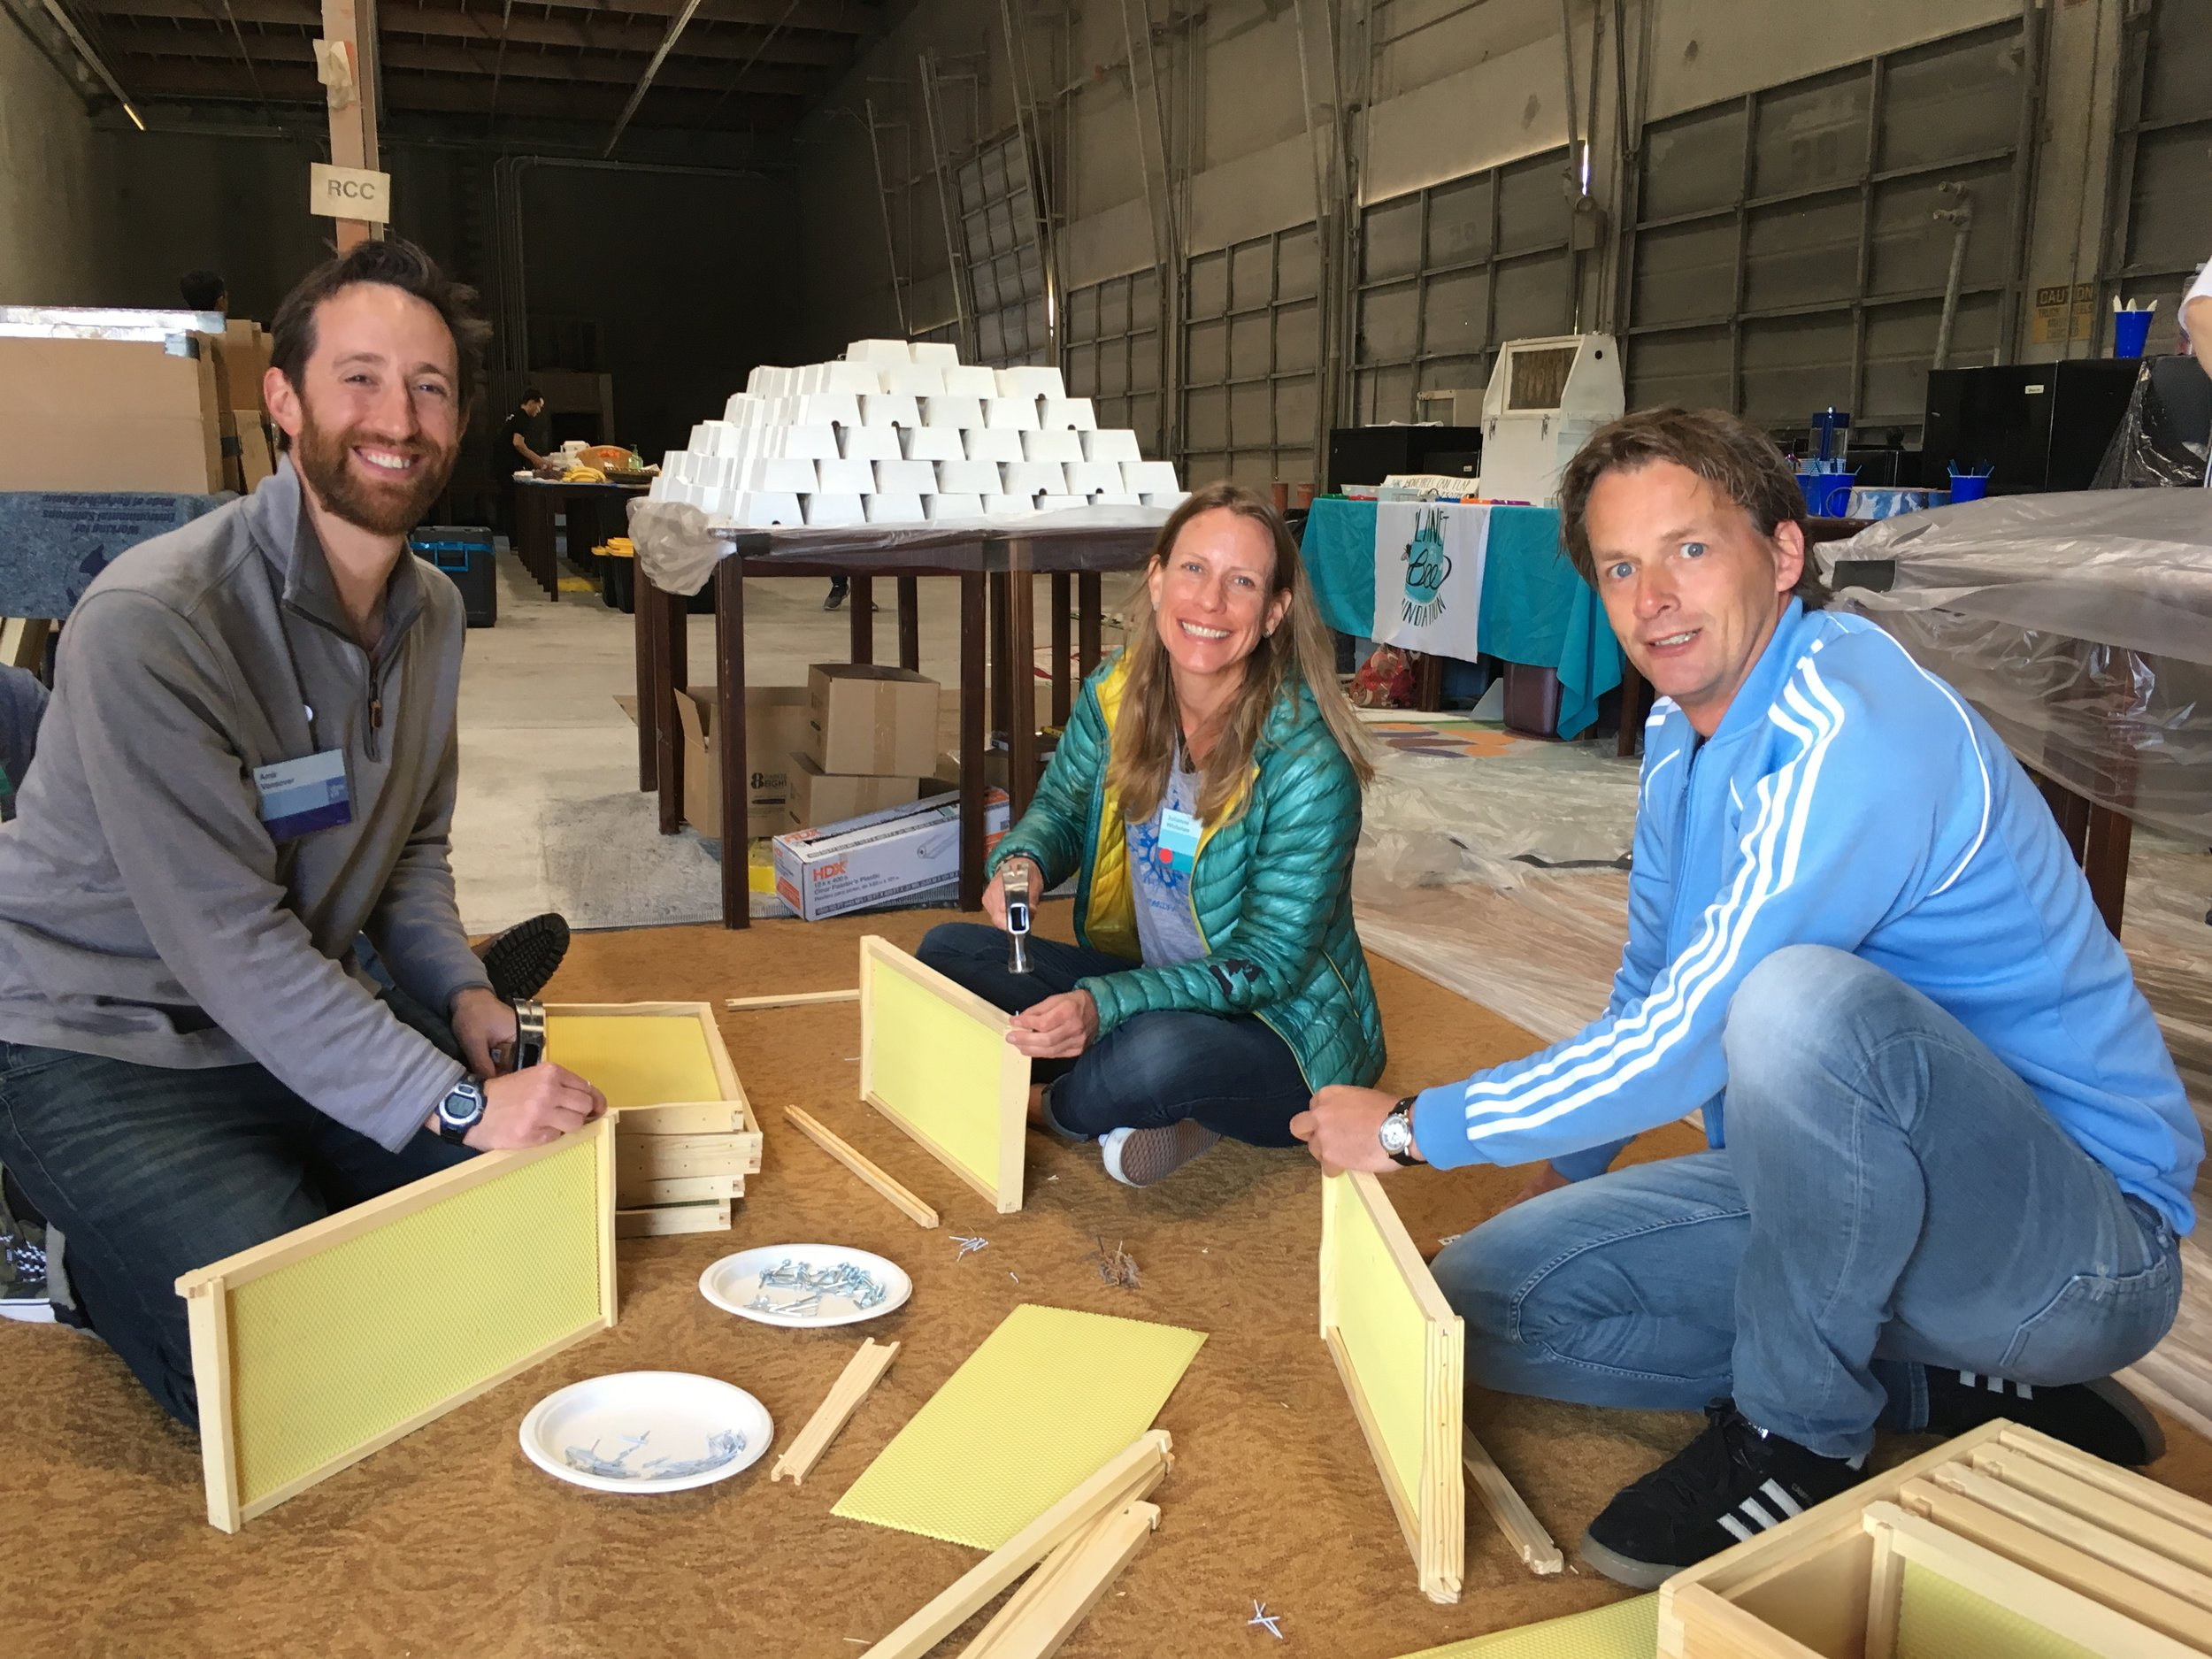 Participants at a beehive building workshop team up to put together frames for a beehive.